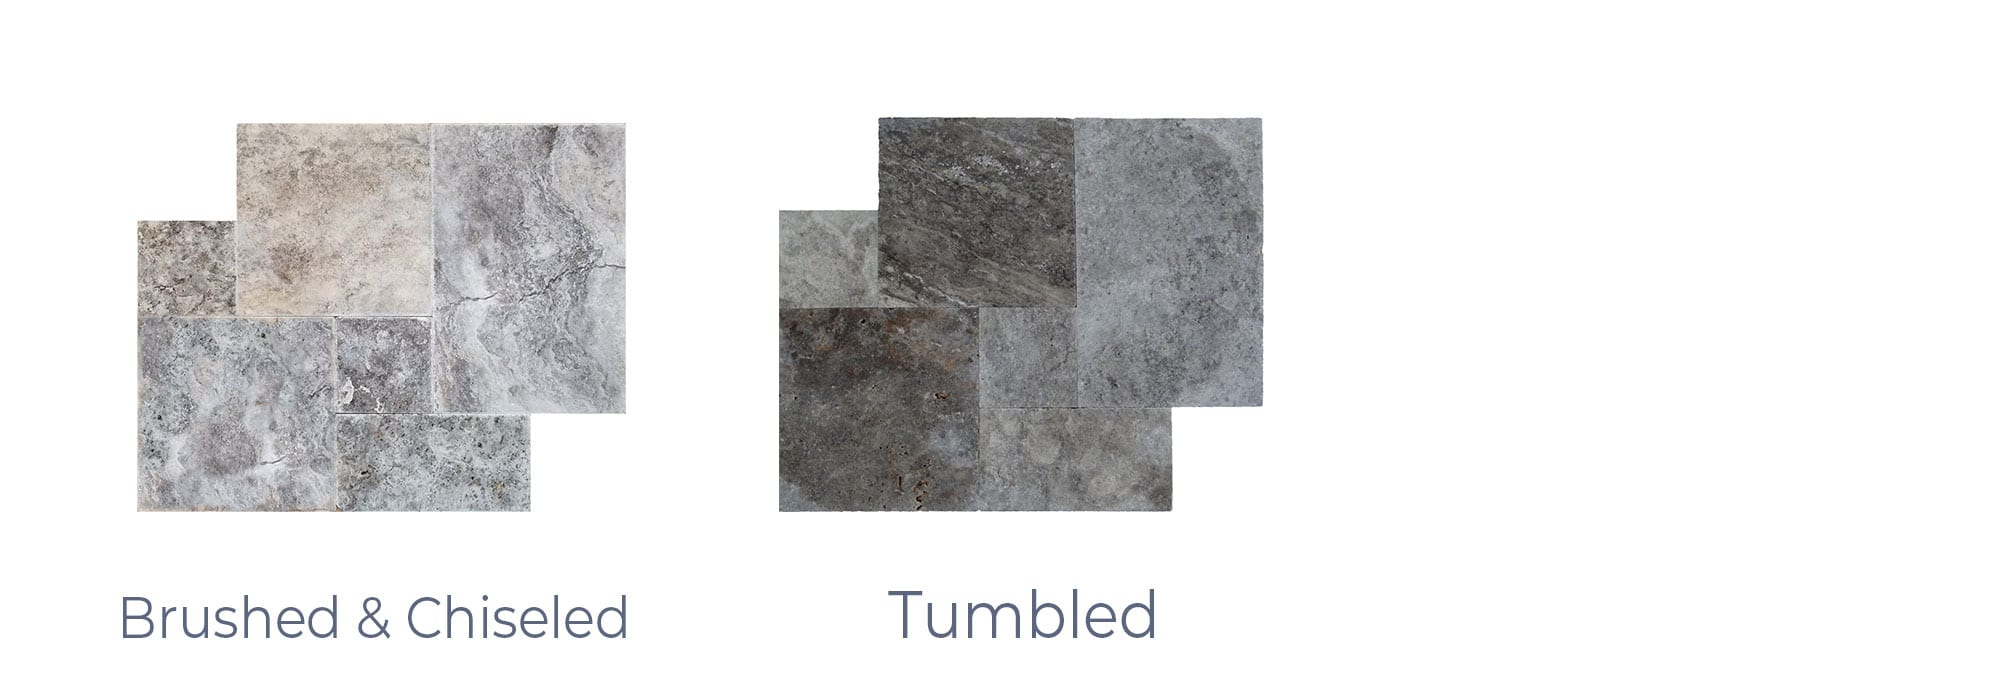 Stoneline-Group-Silver-Travertine-Marble-Collection-Marble-Tile-Brushed-chiseled-tumbled-Pictures